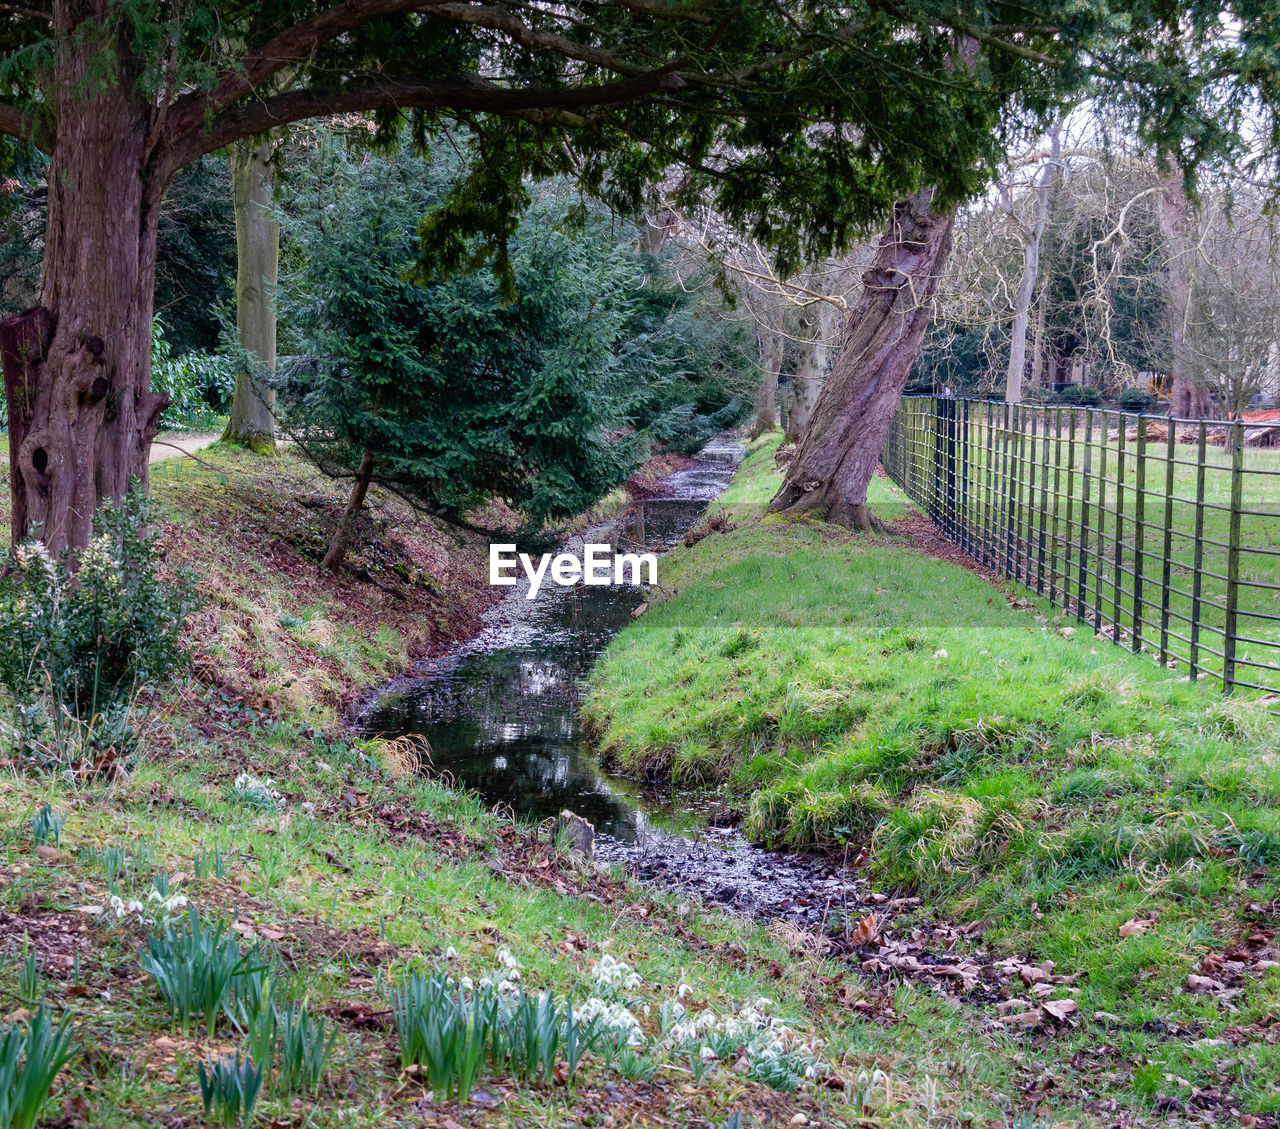 plant, tree, growth, nature, land, no people, tranquility, grass, forest, green color, water, day, tranquil scene, beauty in nature, boundary, fence, barrier, scenics - nature, landscape, outdoors